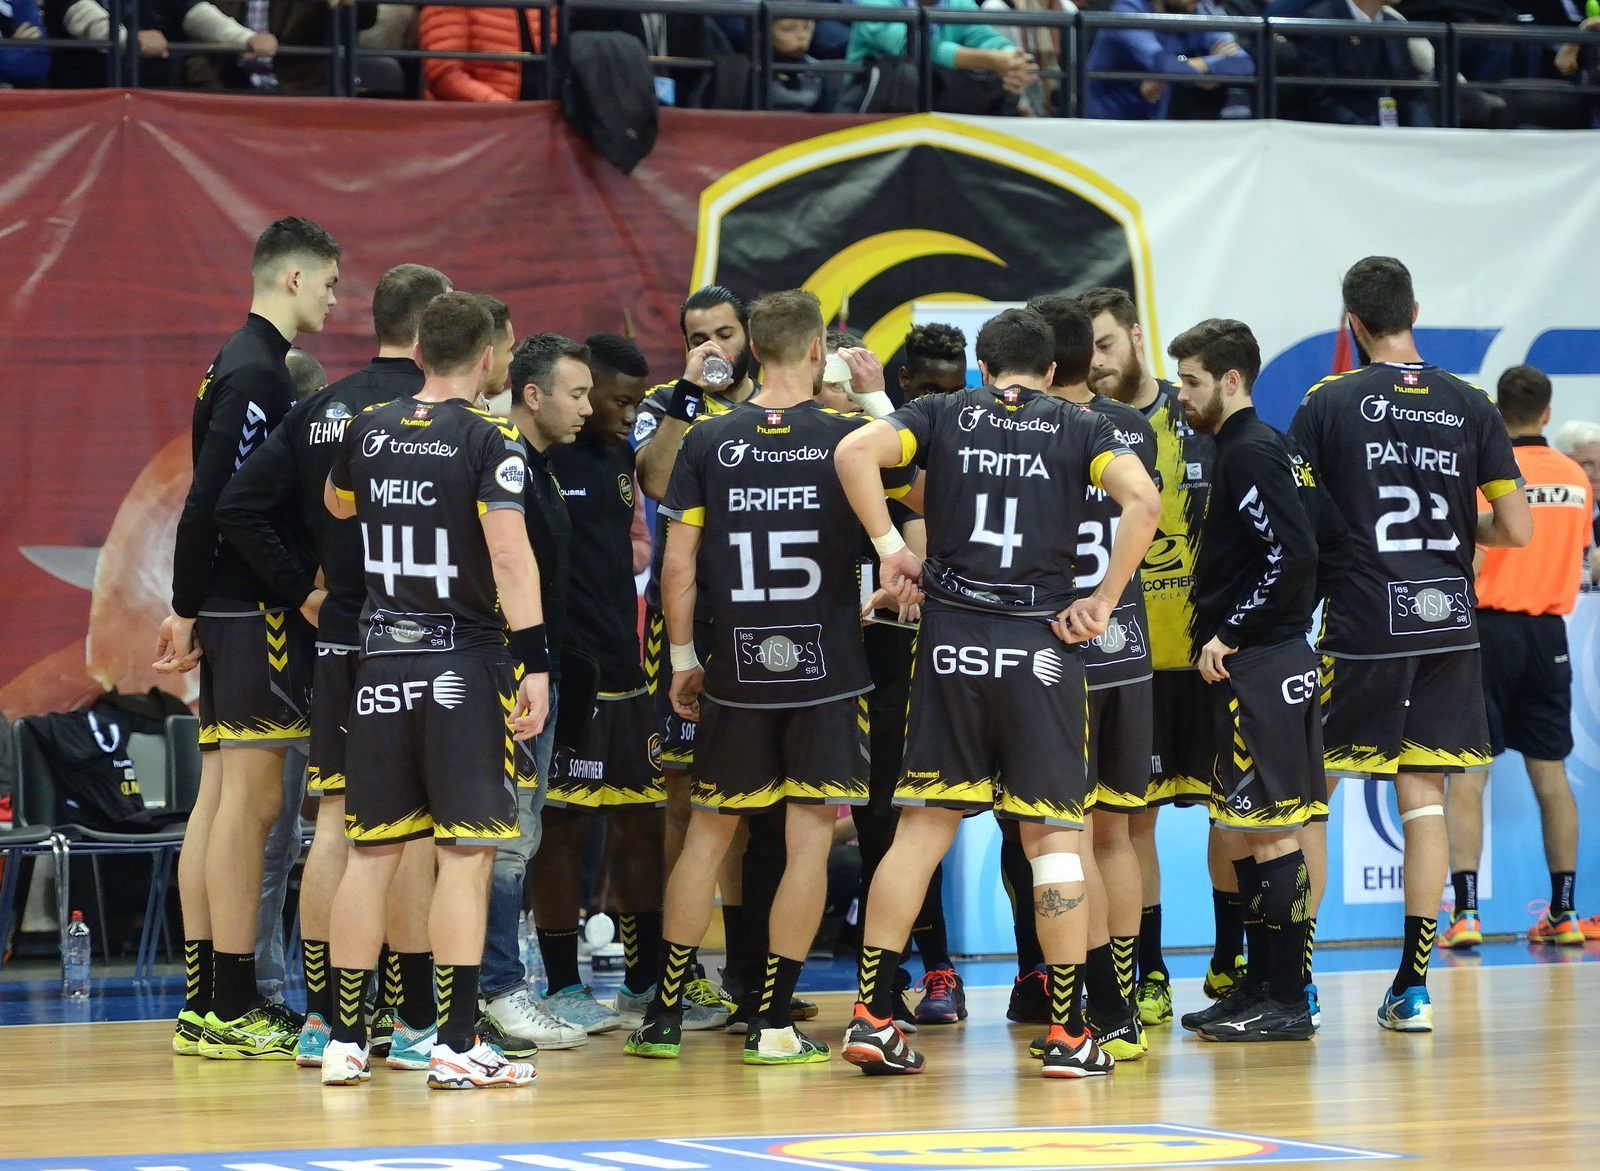 CHAMBERY / TATABANYA QUALIFICATION POUR LA PHASE DE POULE ! 25 novembre 2017 les photos du match